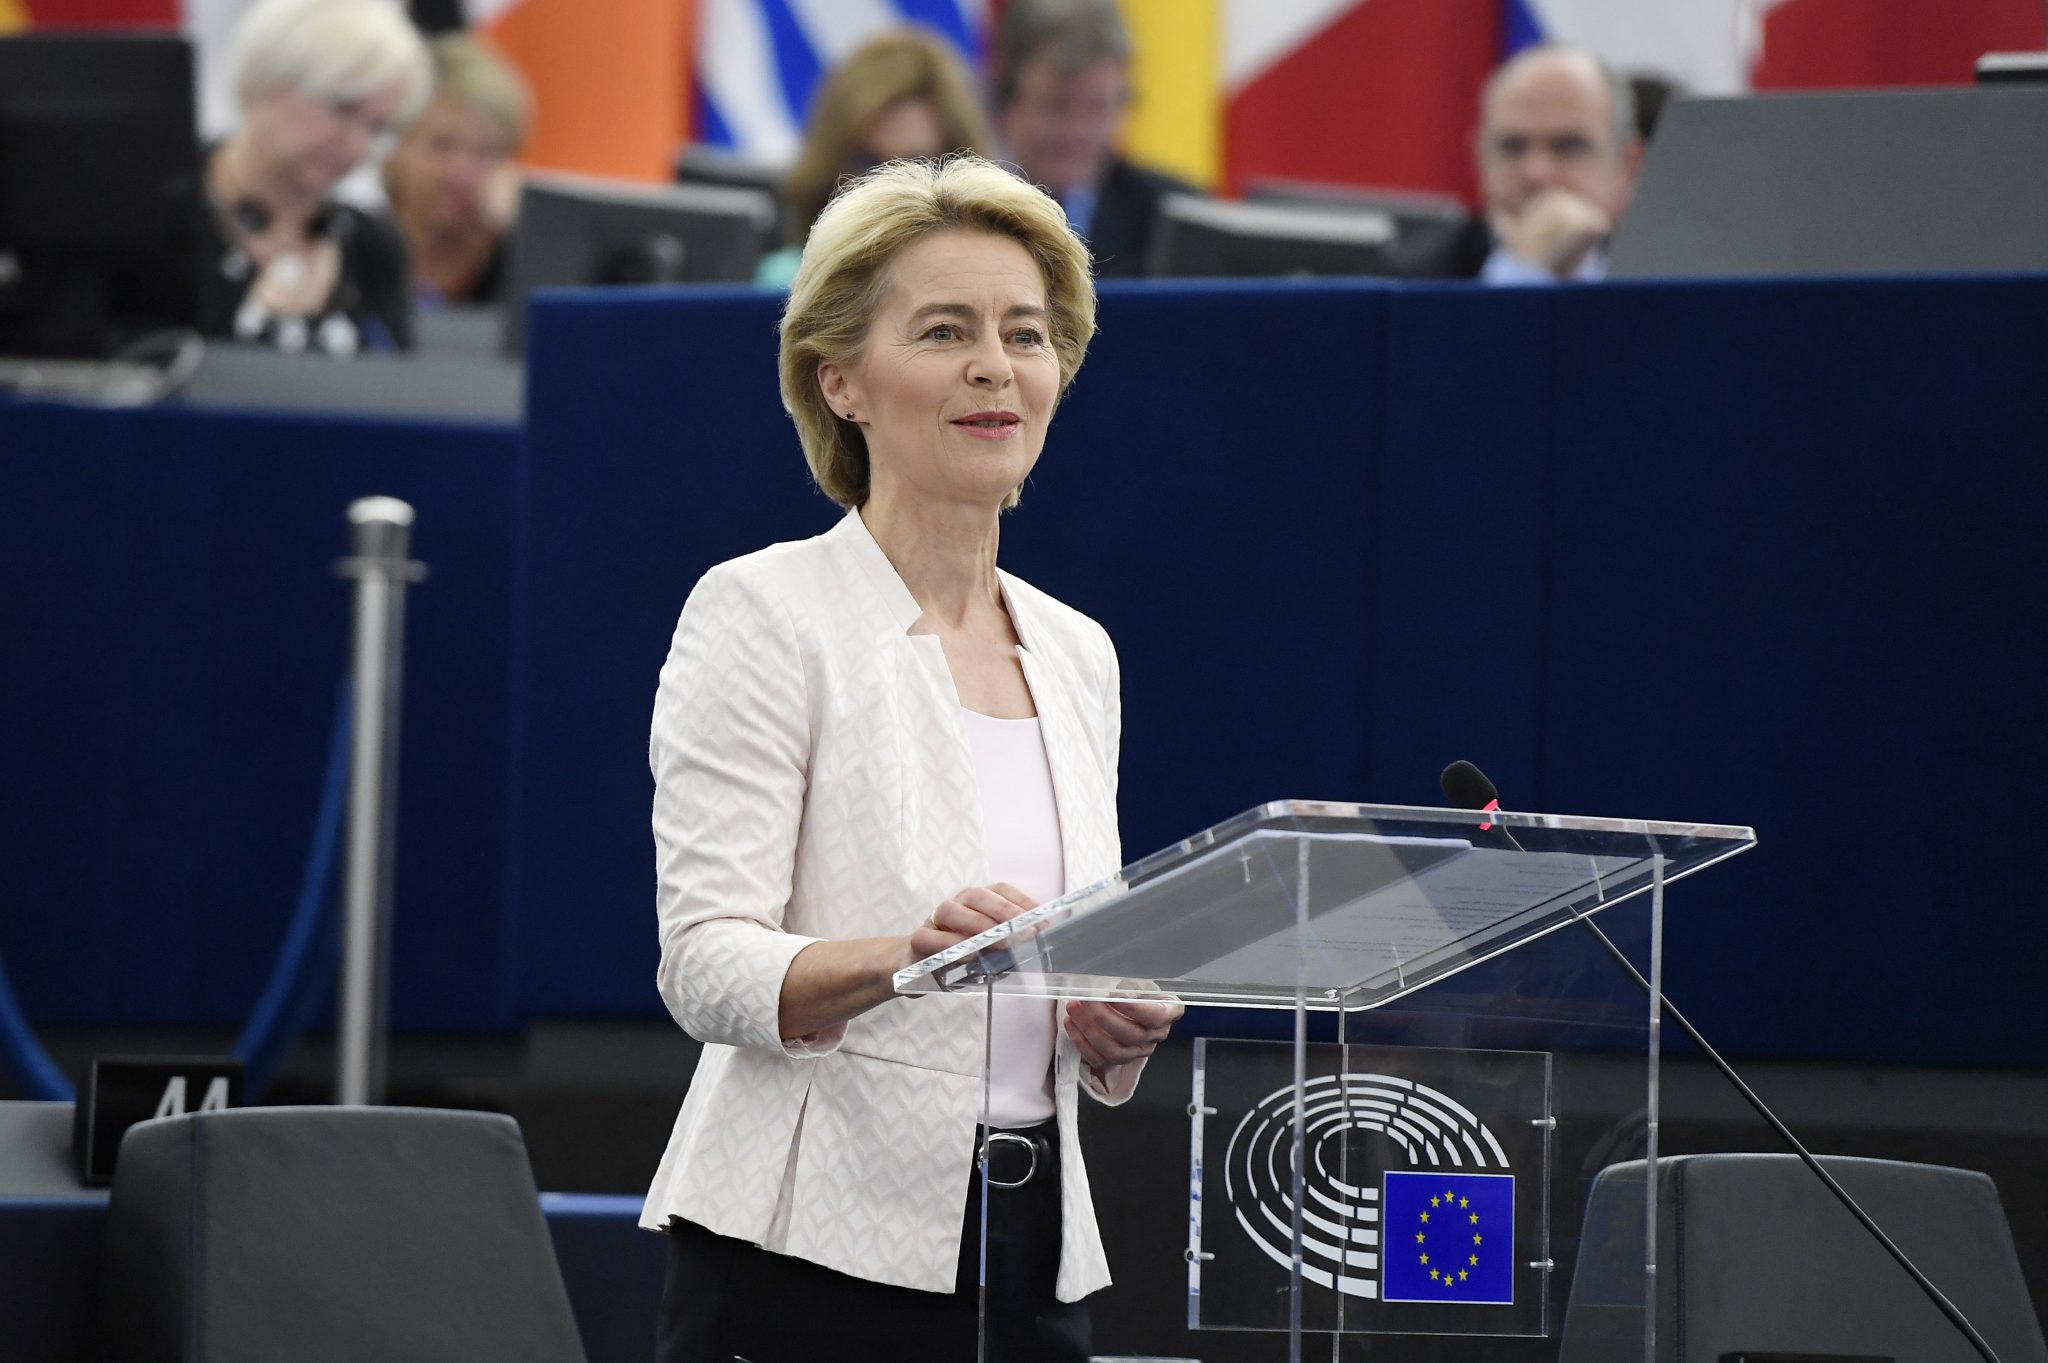 Ursula Von Der Leyen: 'Debates About Hungary Must be More Objective' post's picture